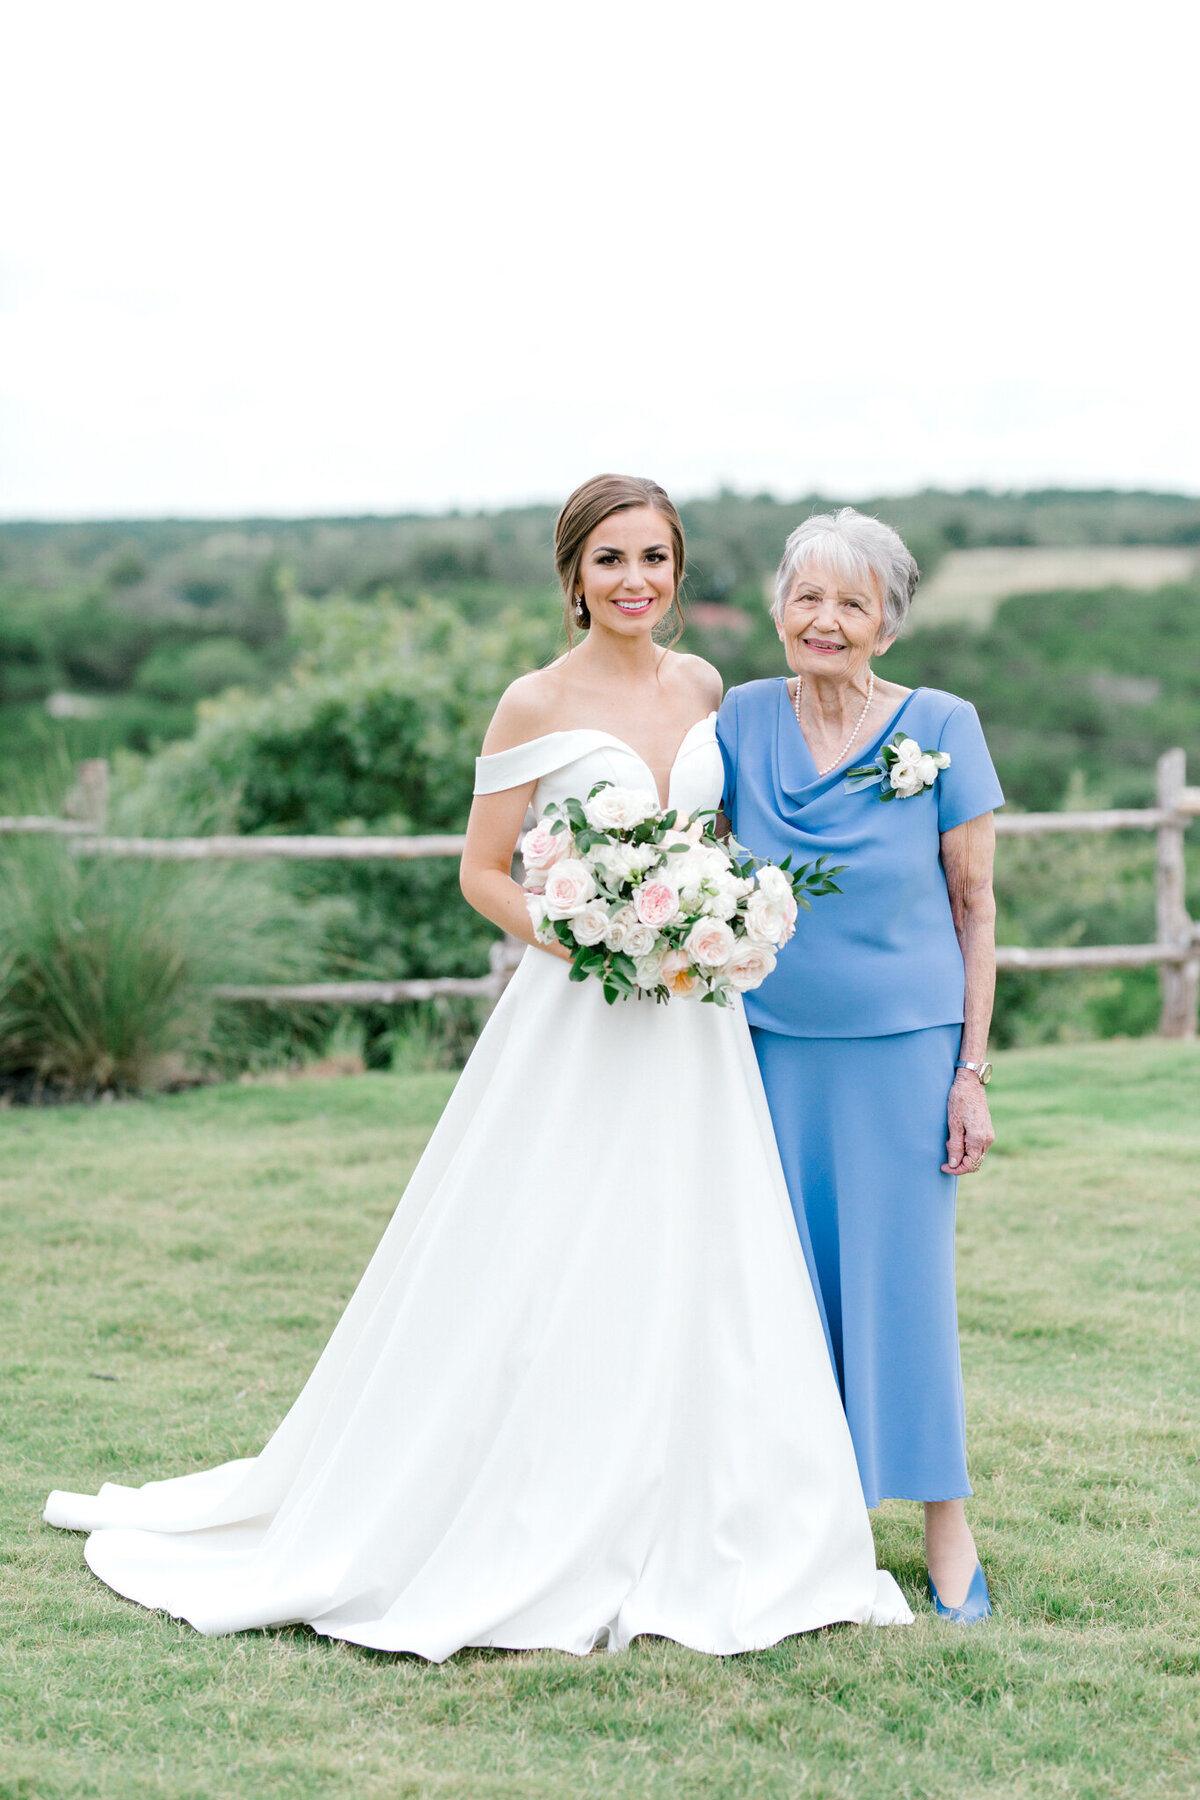 Lexi Broughton & Garrett Greer Wedding at Dove Ridge Vineyards | Sami Kathryn Photography | Dallas Wedding Photography-140